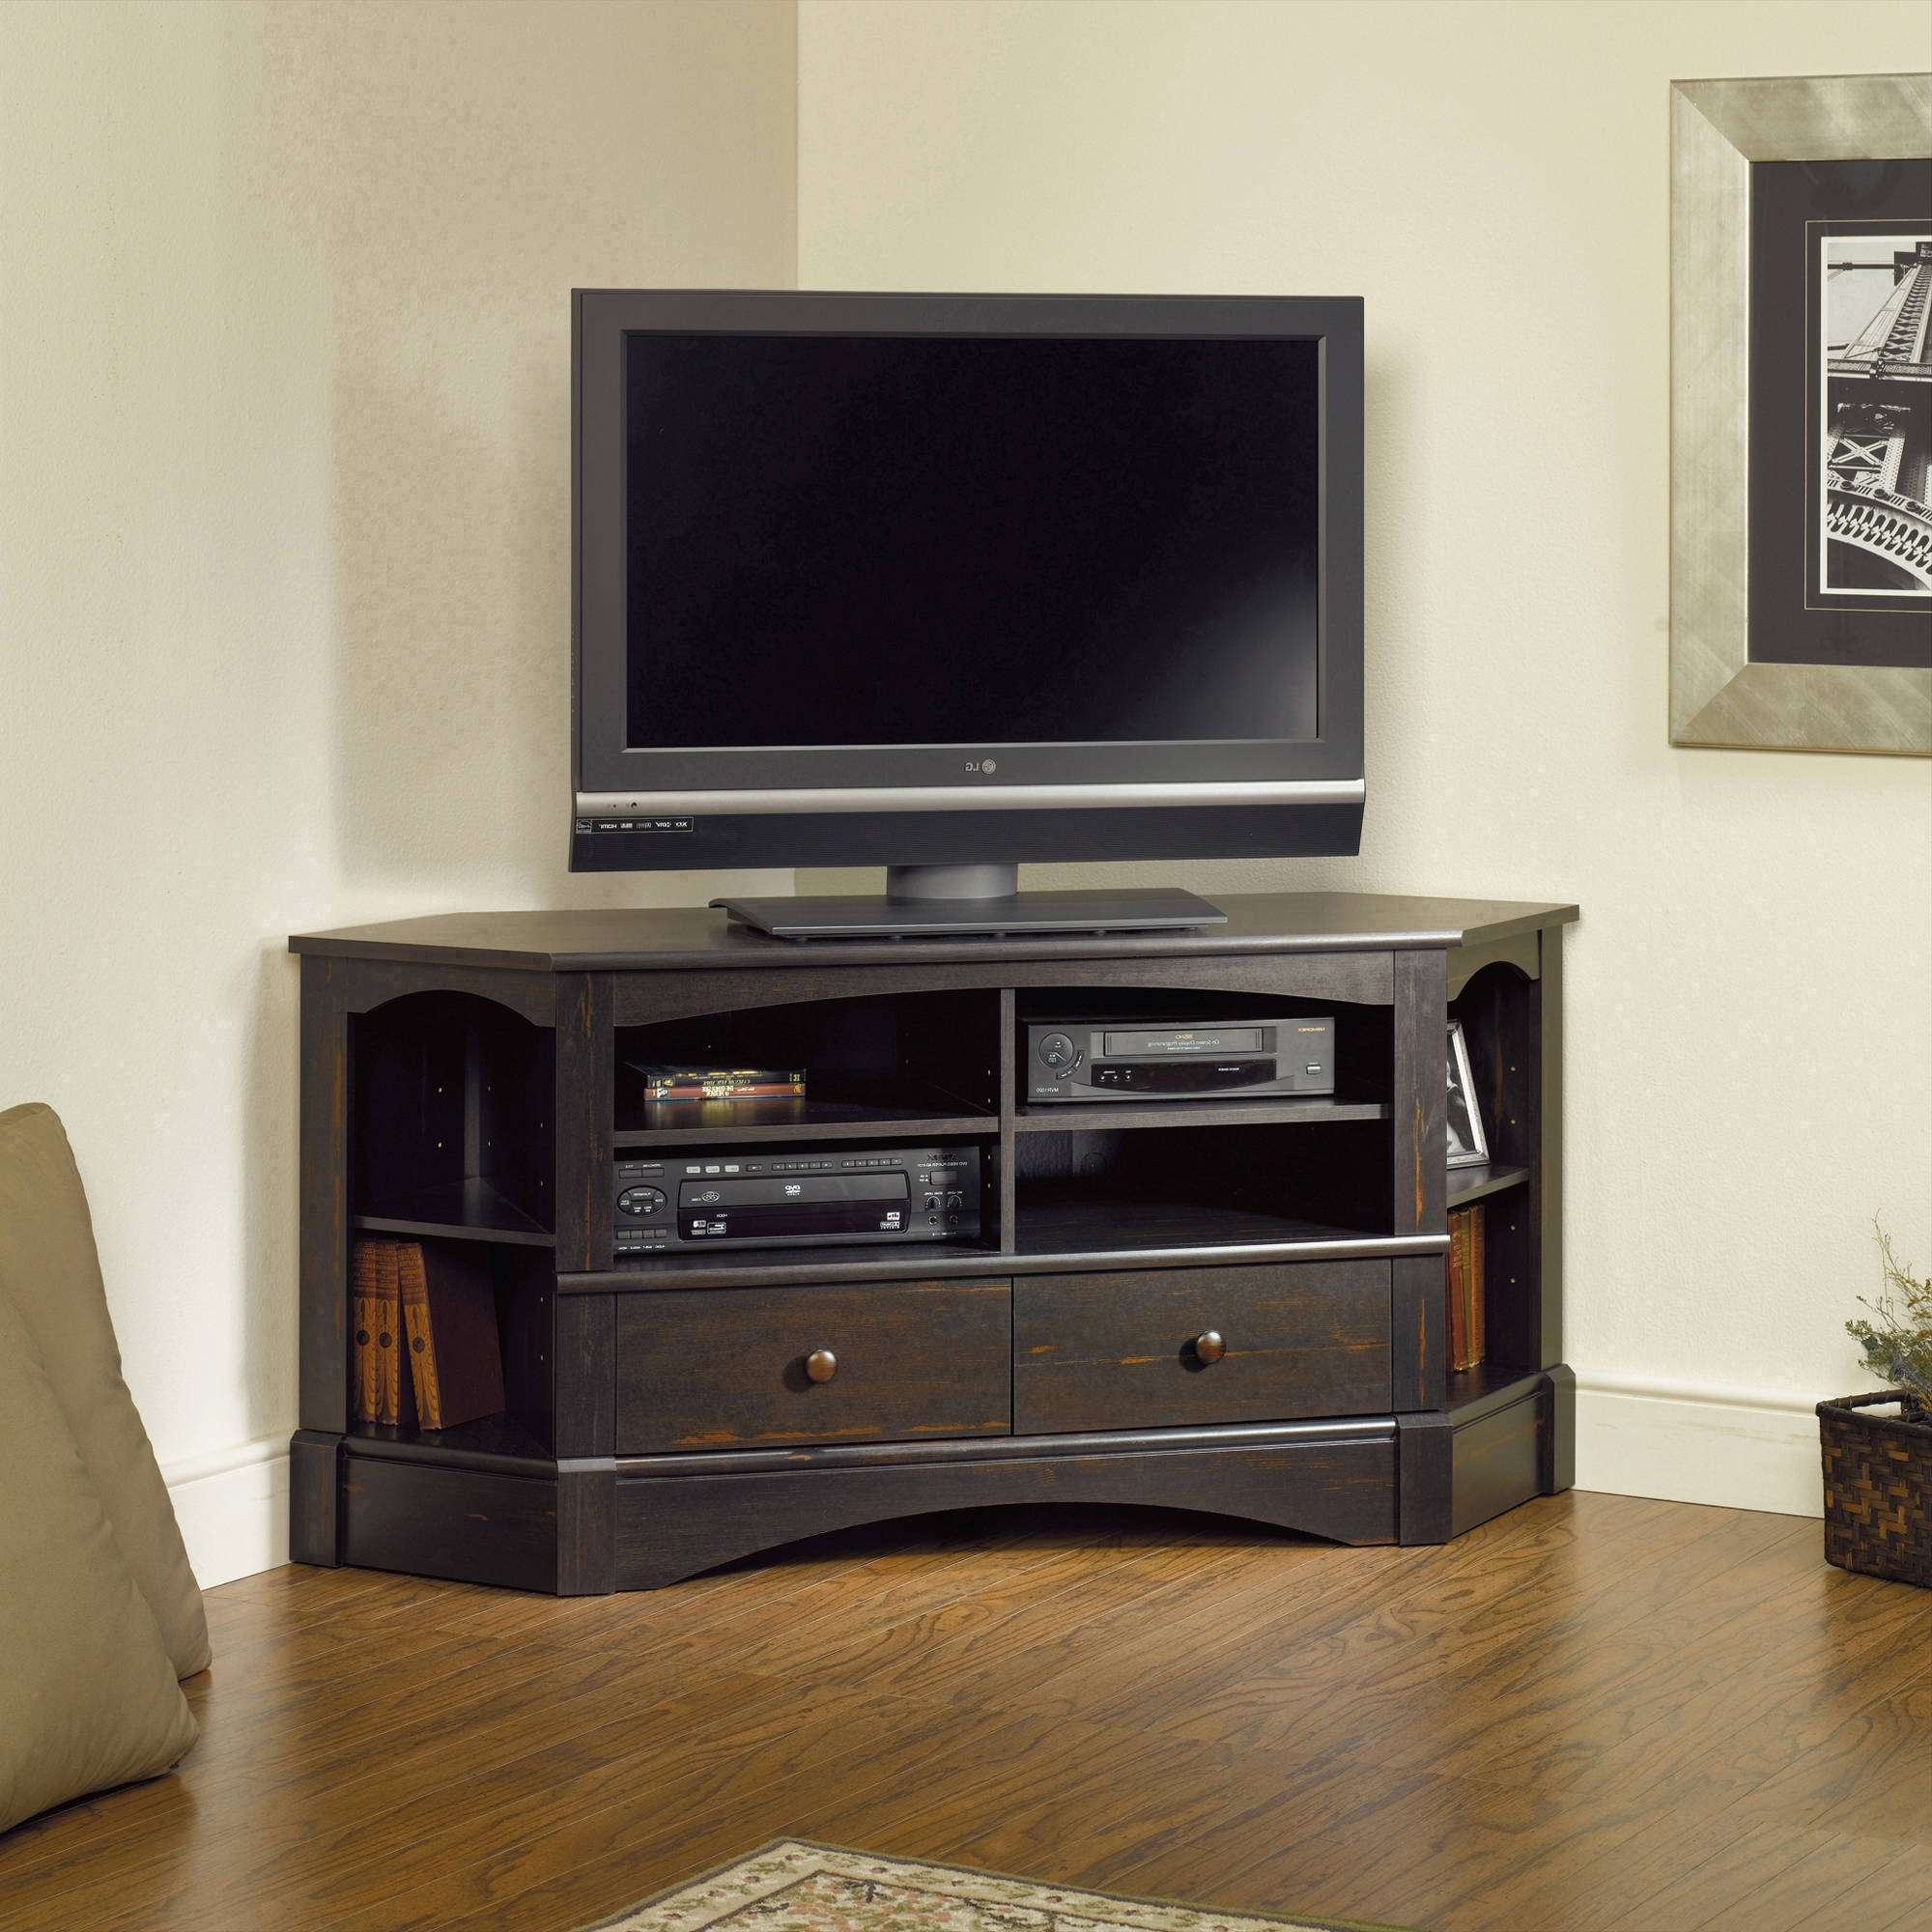 Tv Stand : 32 Unusual 55 Inch Corner Tv Stand With Mount Images With Regard To Corner Tv Stands For 60 Inch Tv (View 8 of 15)